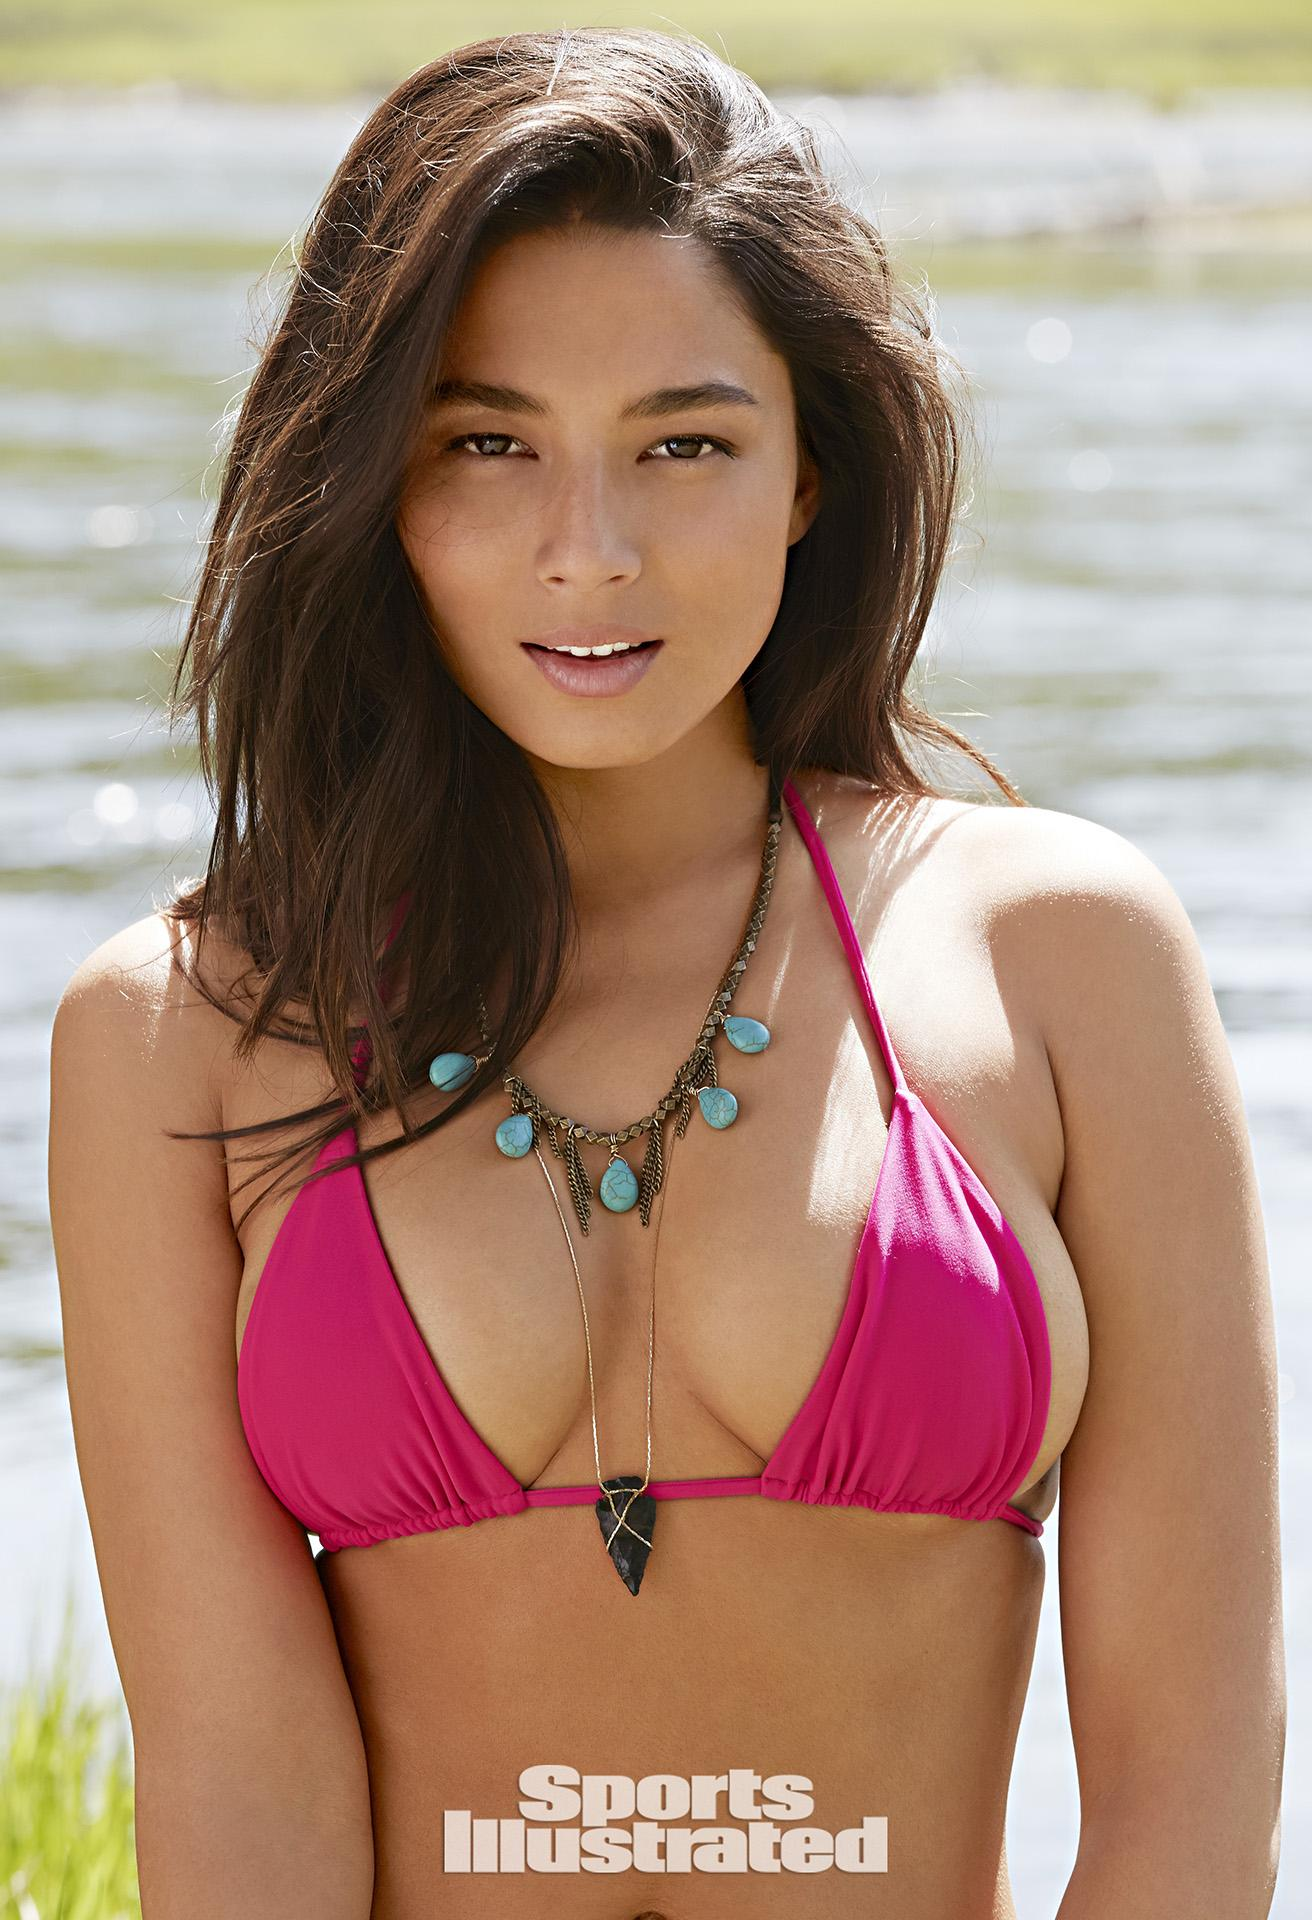 Jessica Gomes Swimsuit Photos, Sports Illustrated Swimsuit 2015